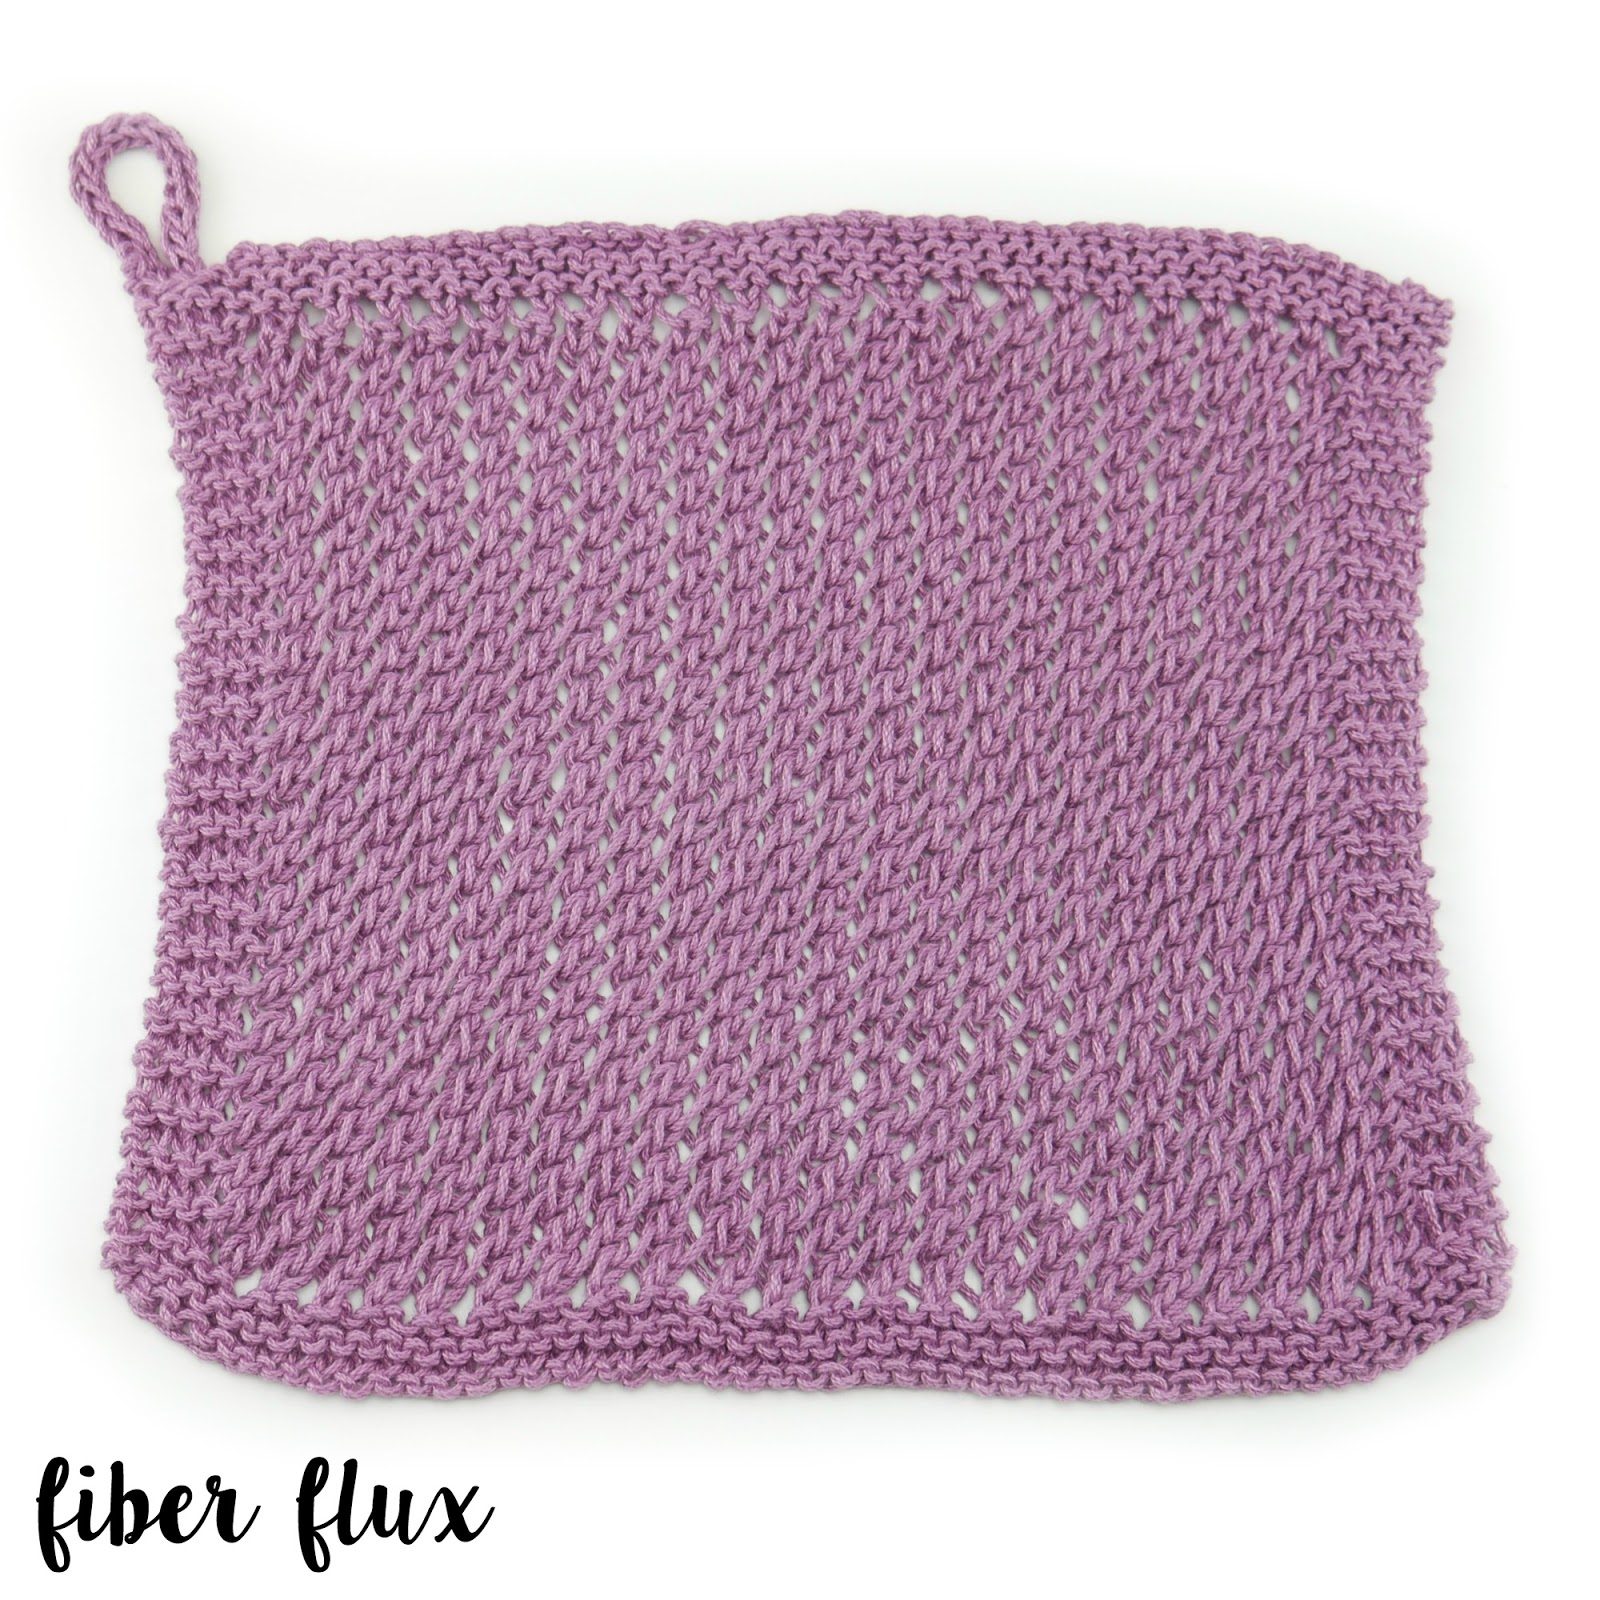 Fiber Flux: Free Knitting Pattern...Textured Lace Dishcloth!